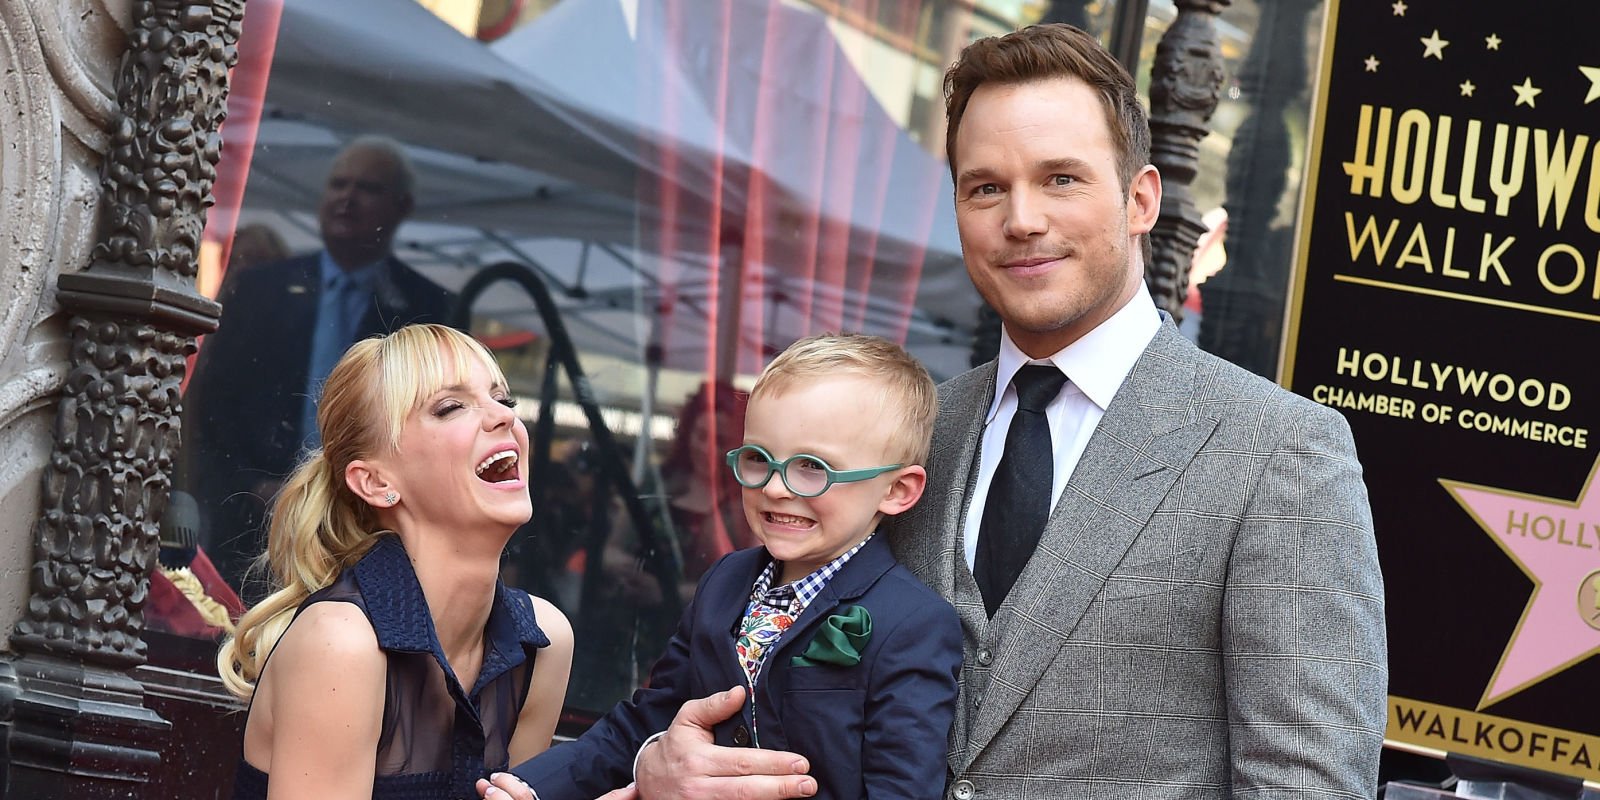 The Sad, Alleged Reason Why Chris Pratt and Anna Faris Split